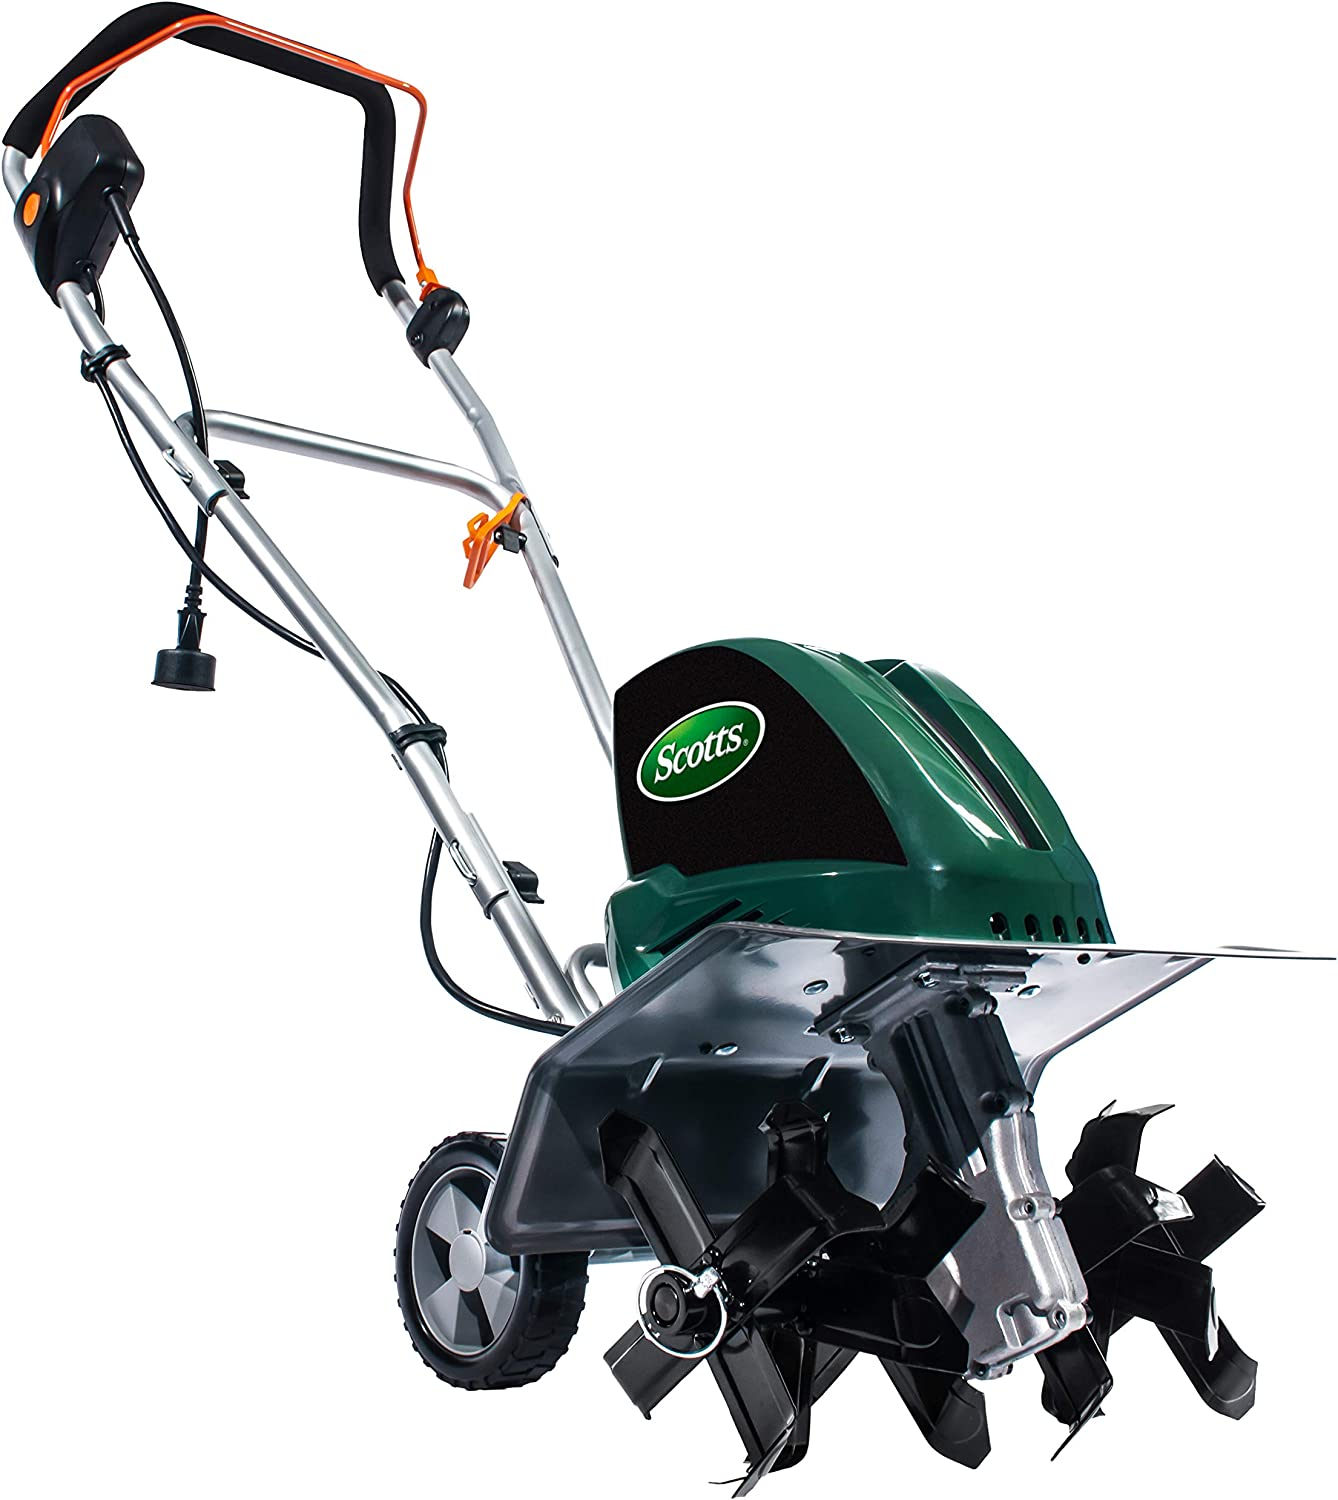 Scotts Outdoor Power Tools Max 54% OFF TC70135S 16-Inch 13.5-Amp Challenge the lowest price Till Corded